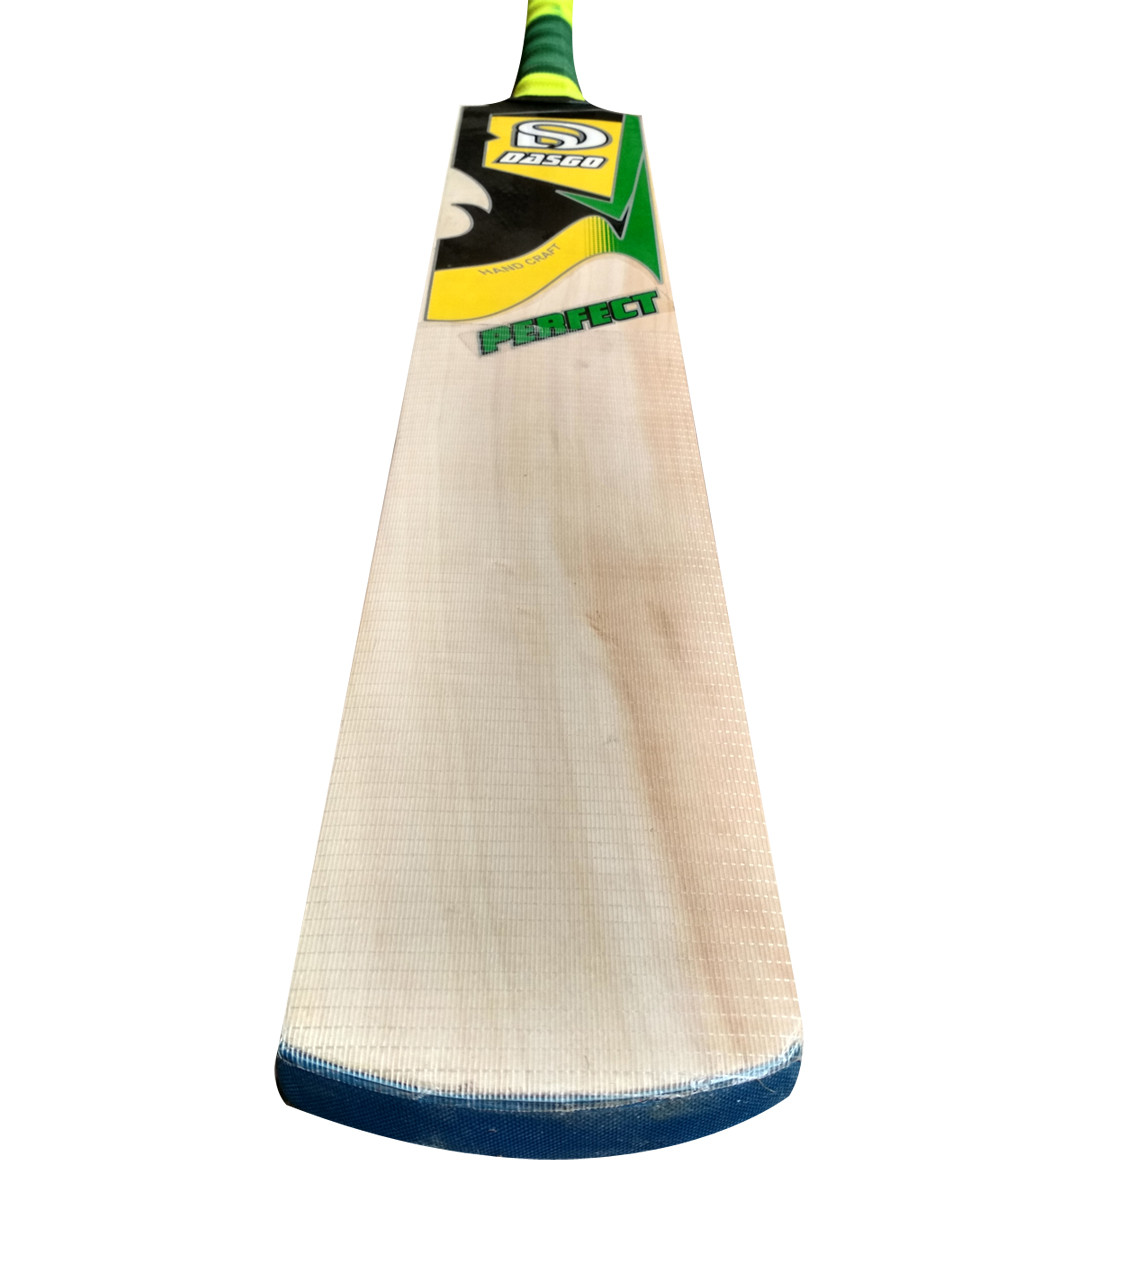 HM Kashmir Willow Bat A+ Grade